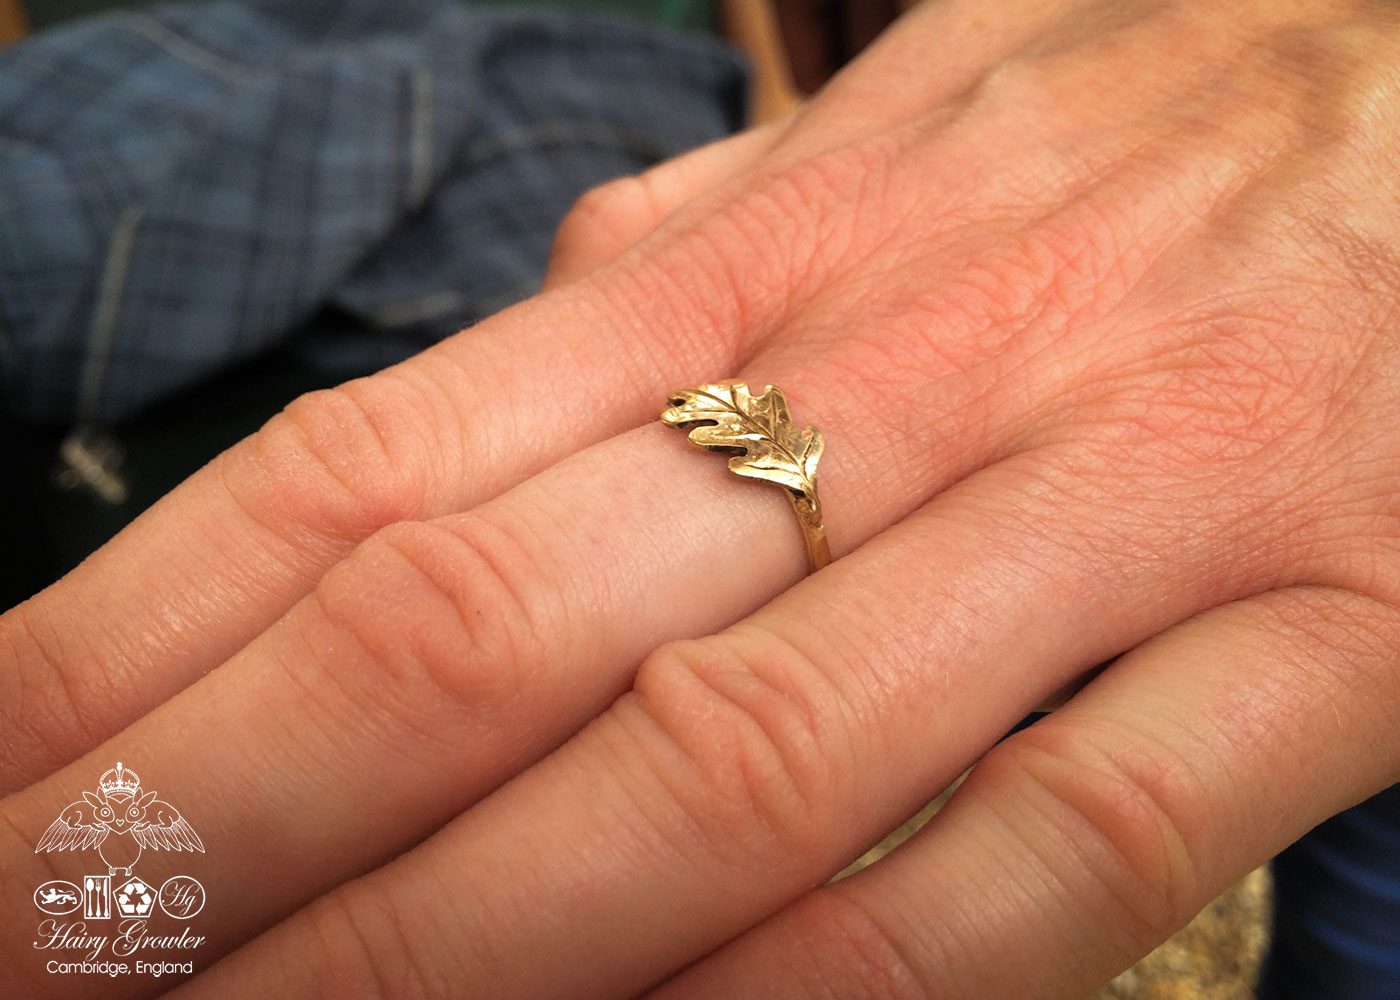 handcrafted and recycled 22ct gold sovereign oak leaf ring. Totally handcrafted and recycled. Unusual and interesting.